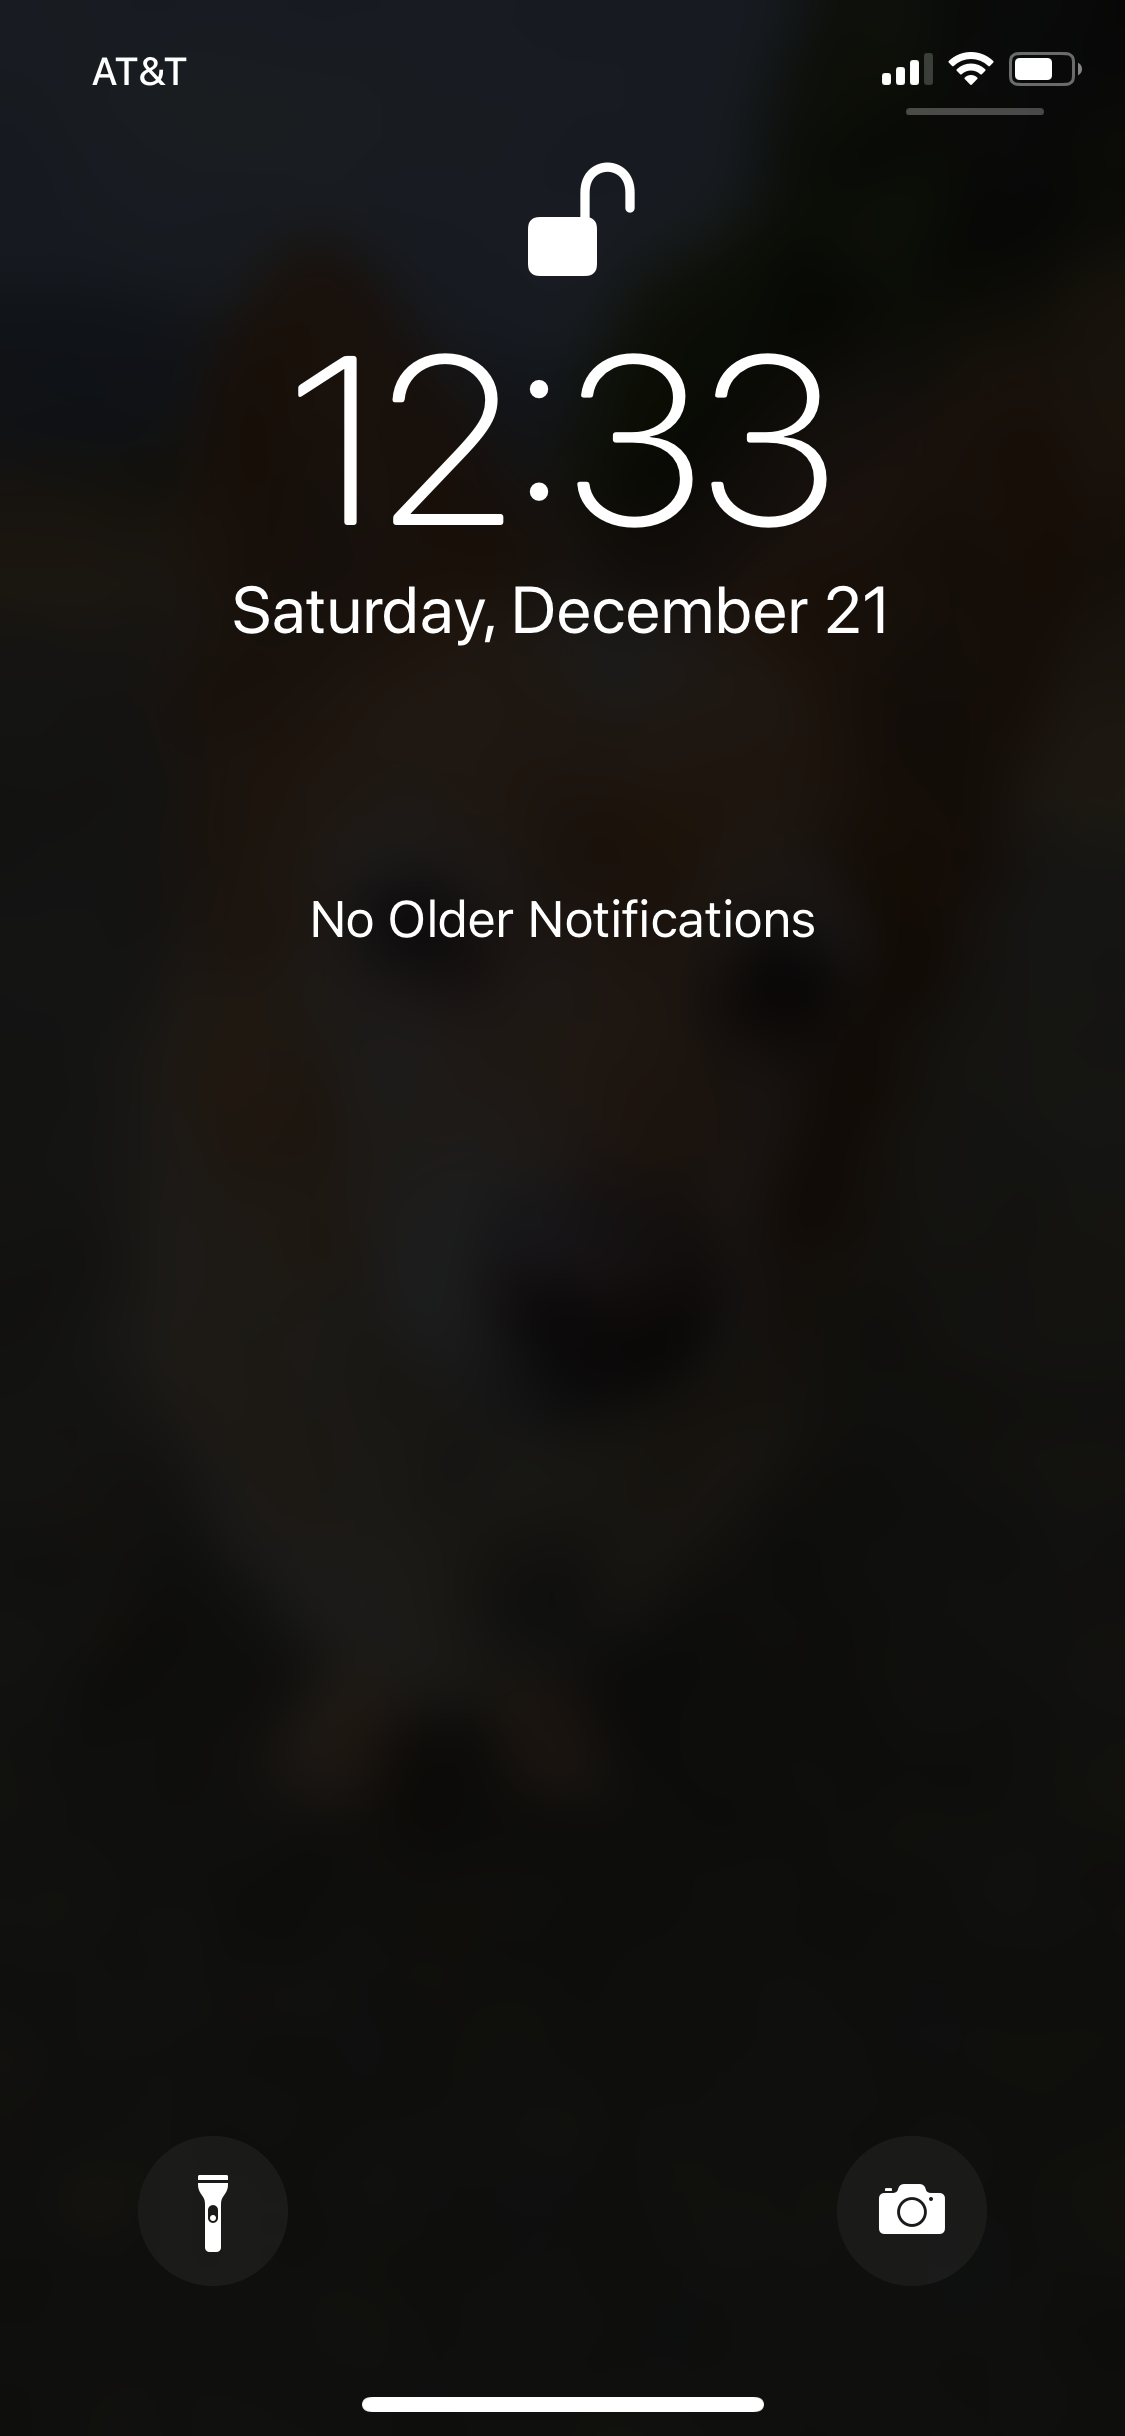 Issue with iPhone Lock Screen Image   Apple Community